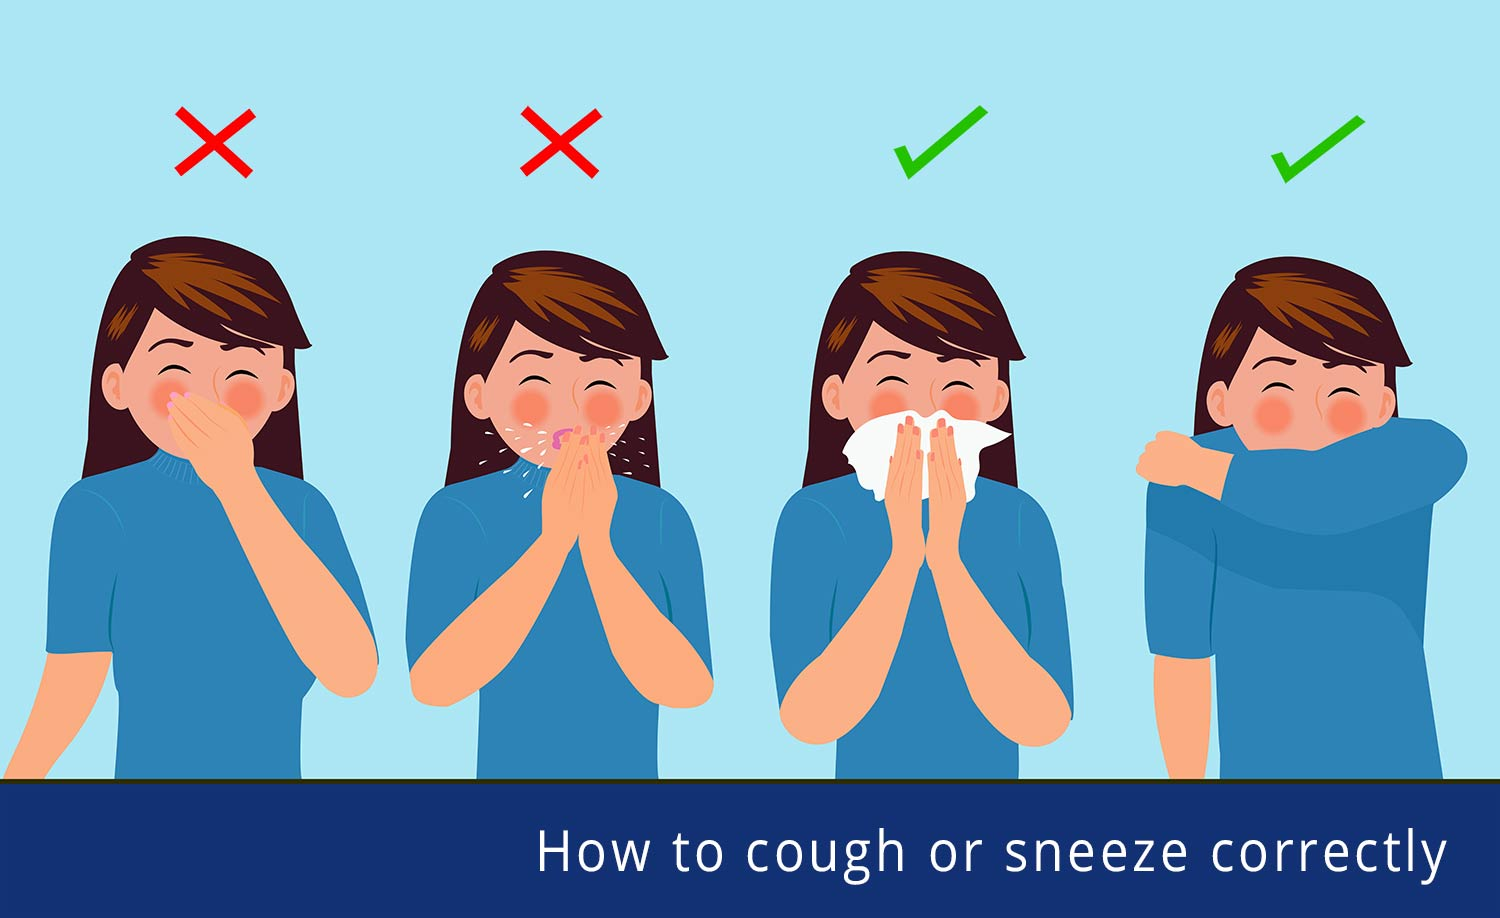 how to cough or sneeze correctly